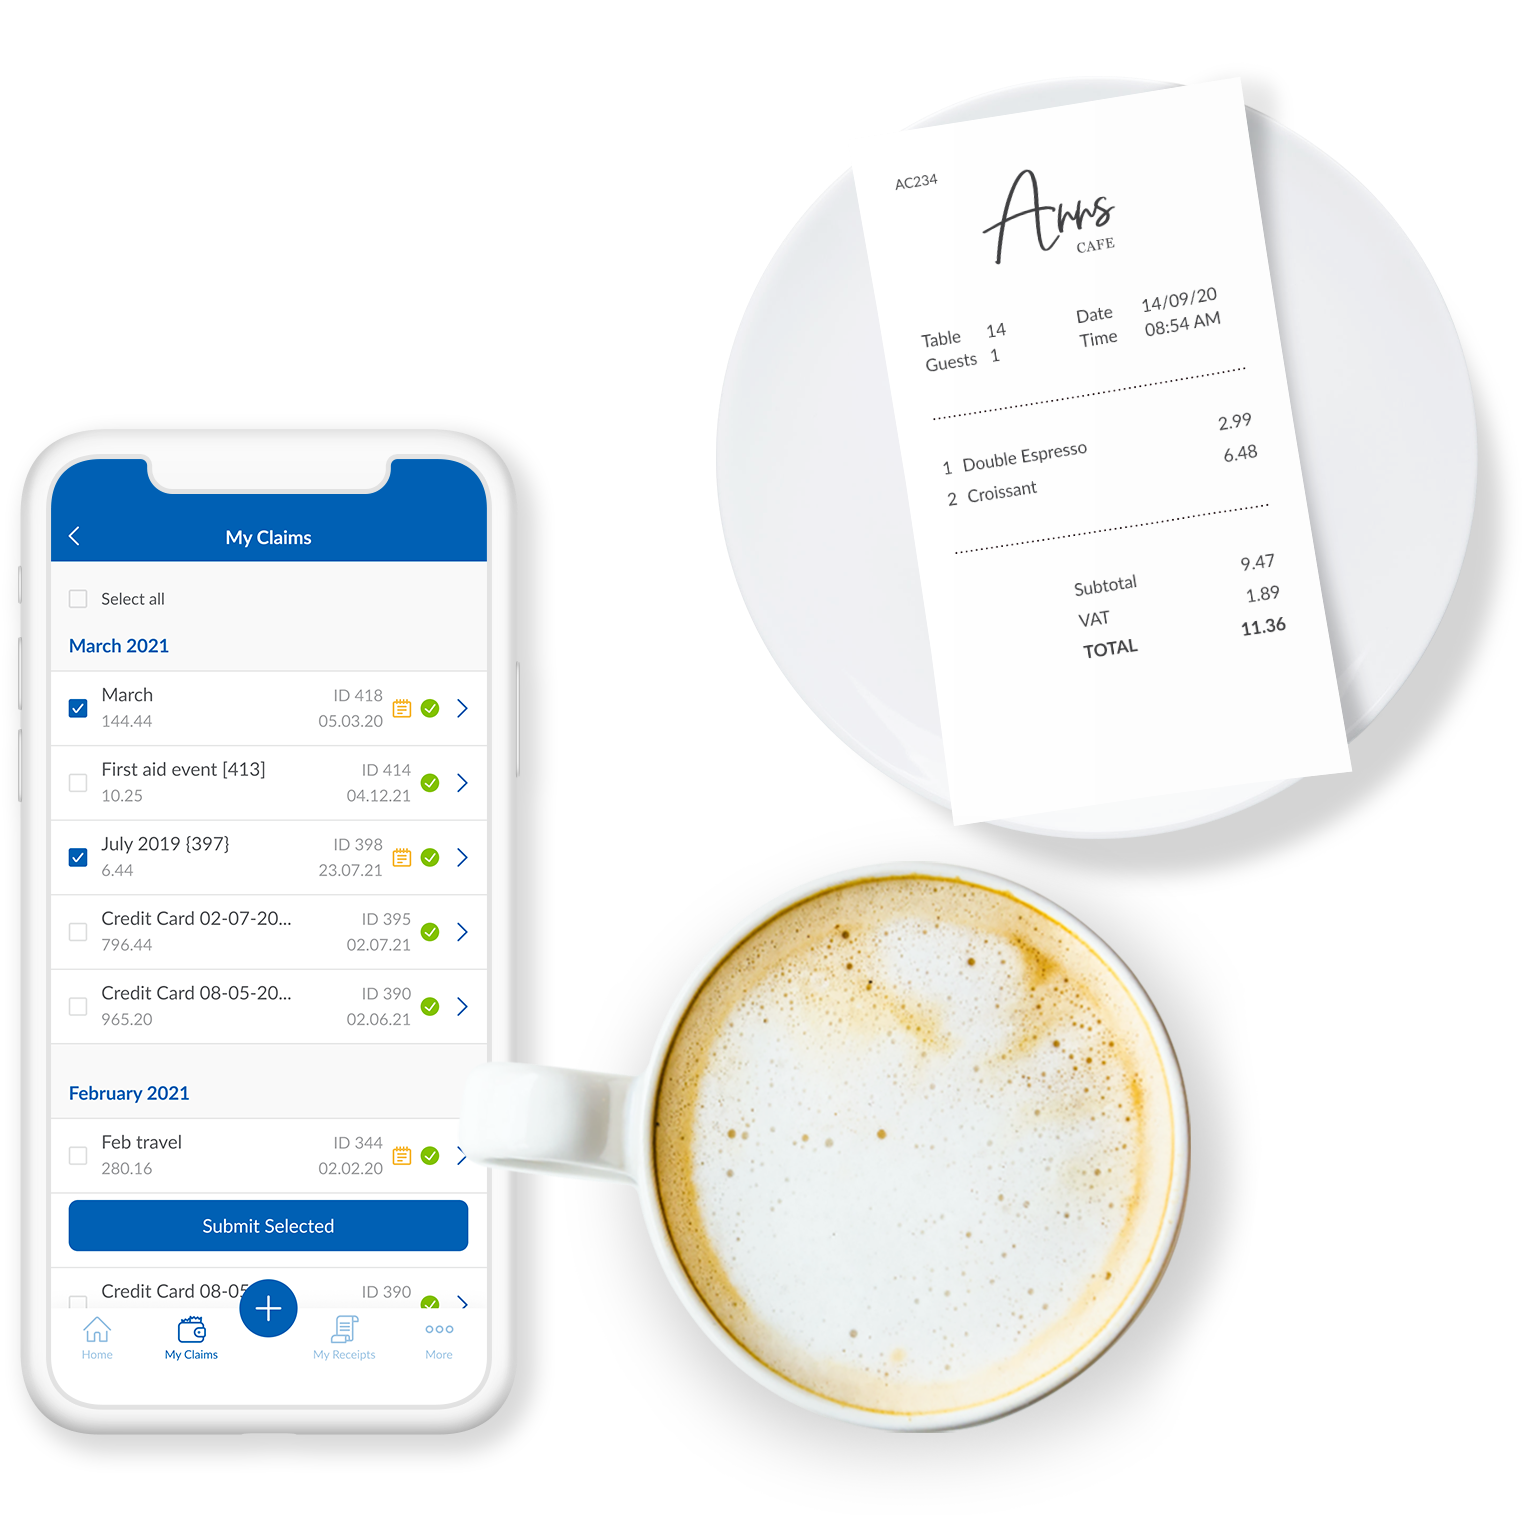 webexpenses Software - Capture Receipts instantly with the Webexpenses Mobile App